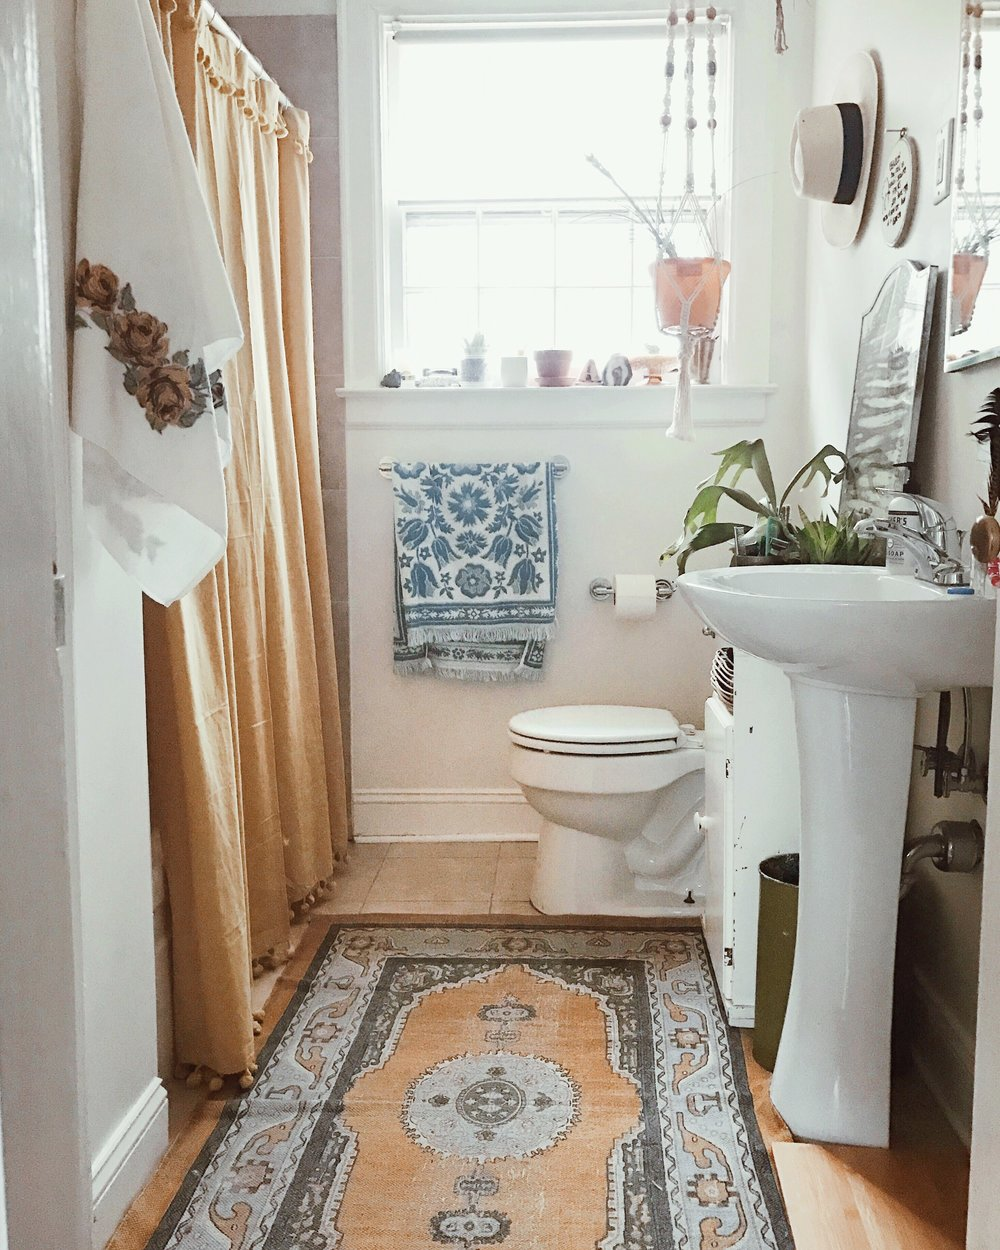 Leah's dreamy bathroom.